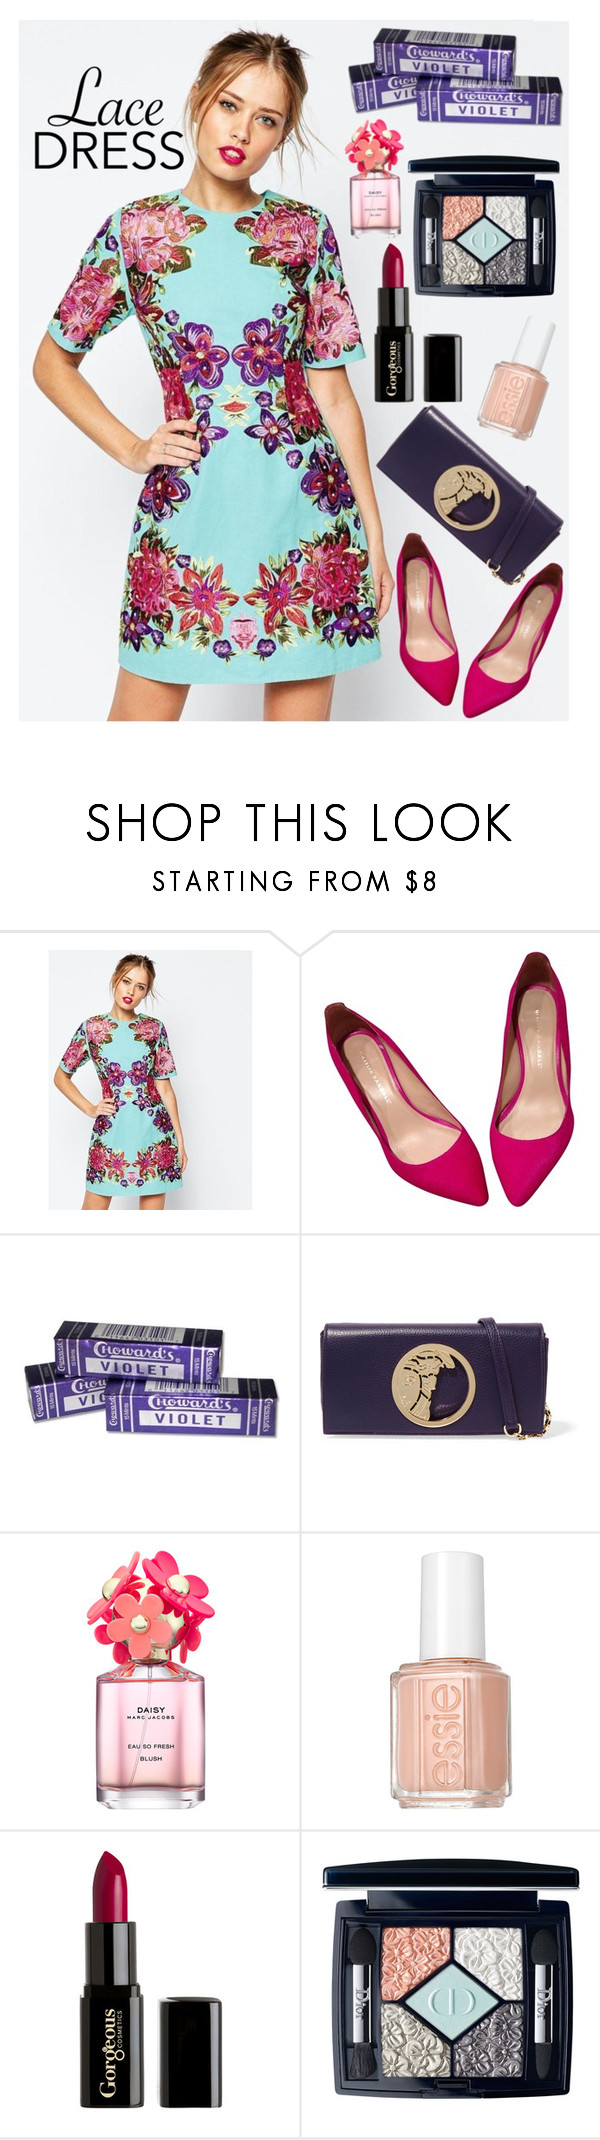 """""""Embrace the Lace 2"""" by rachael-aislynn ❤ liked on Polyvore featuring ASOS, Loeffler Randall, Versace, Marc Jacobs, Essie, Gorgeous Cosmetics, Christian Dior, Spring, floral and lace"""